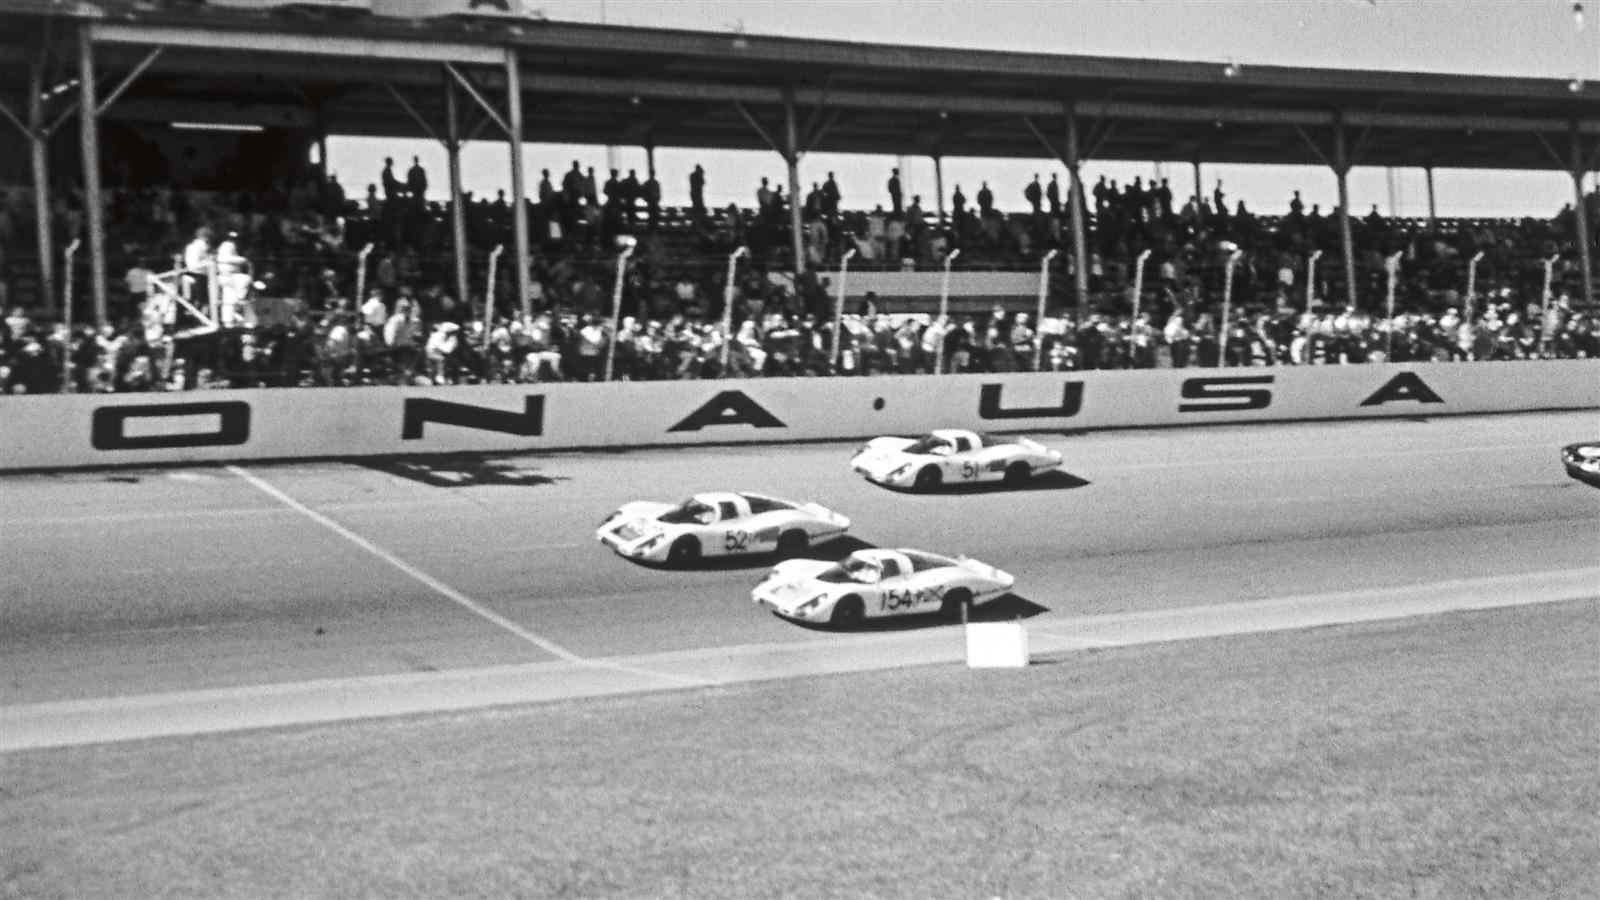 Porsche 907 LH in Daytona in 1968